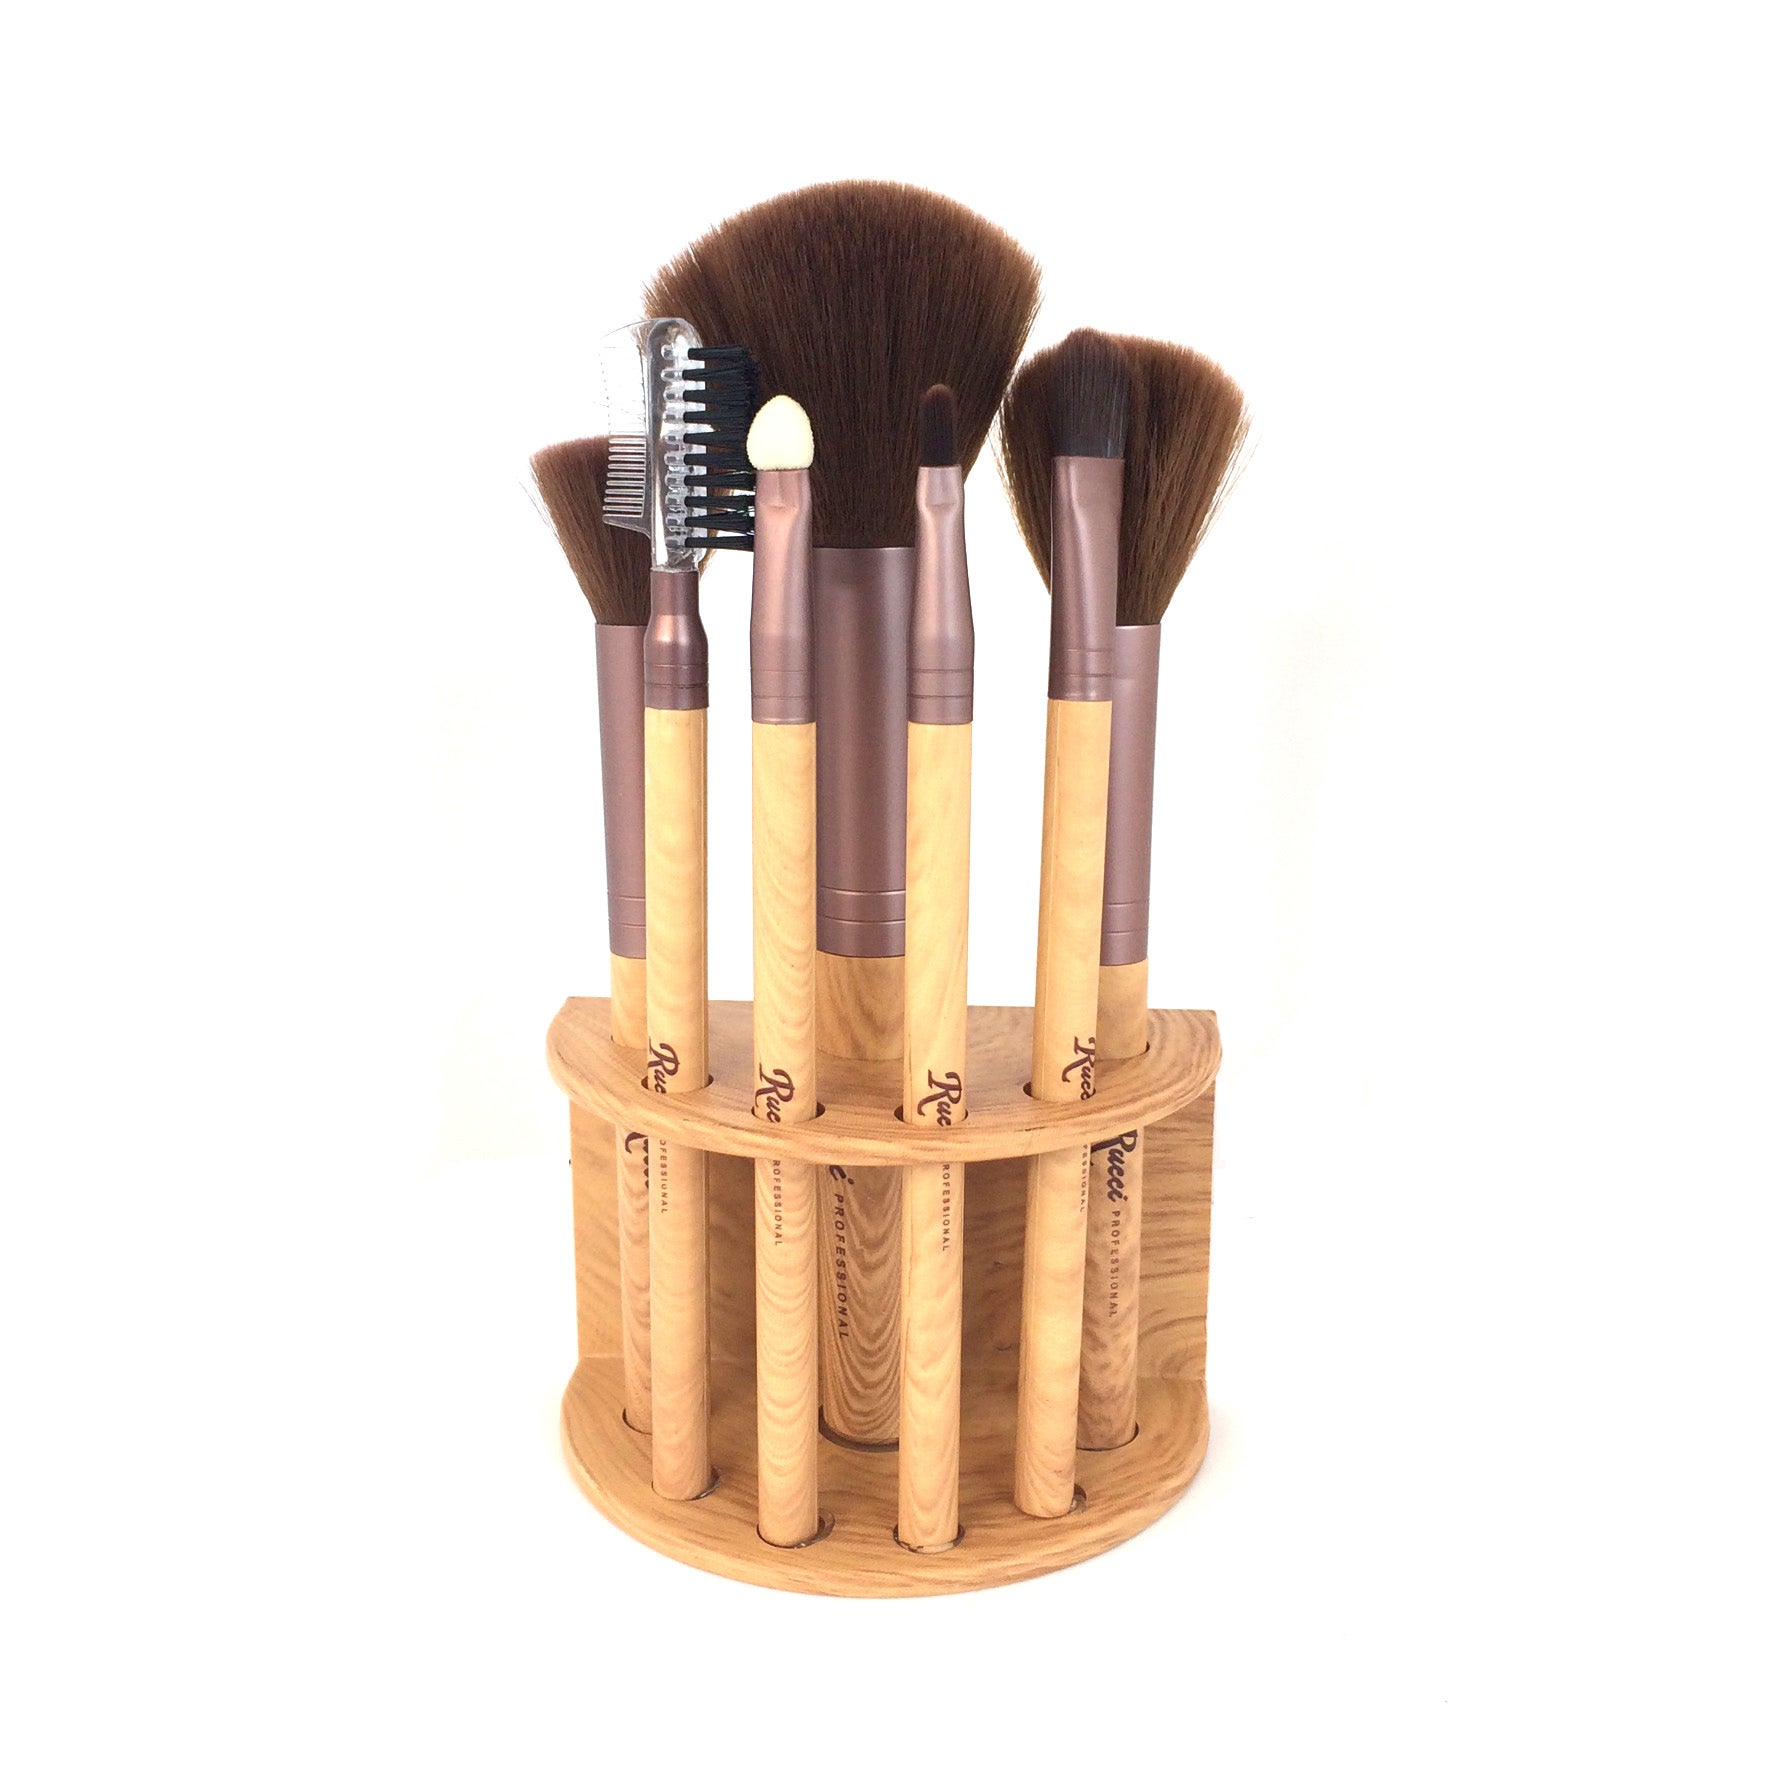 7-piece Makeup Brush Set with Pouch and Stand Holder